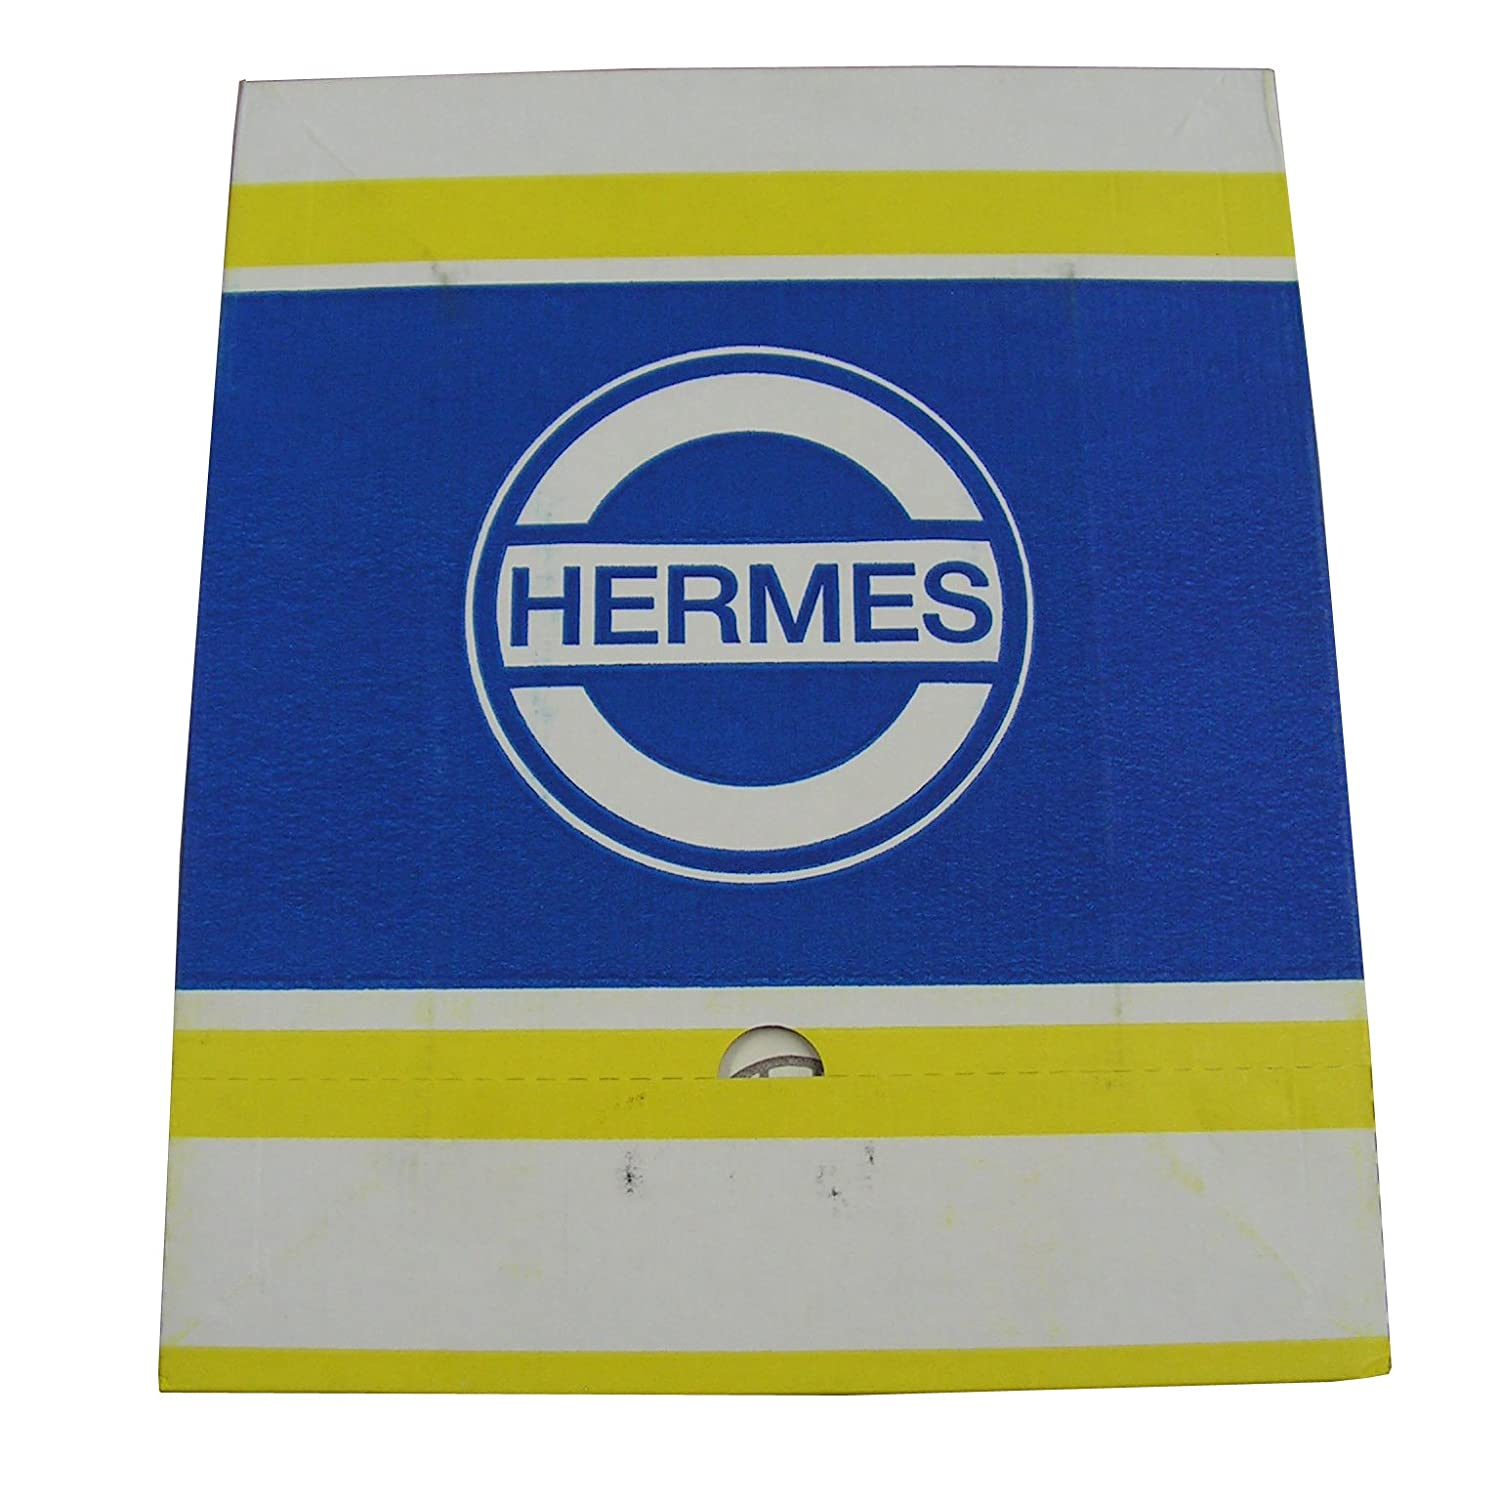 50 Sheets//Package - 120 Grit C-Weight Hermes Abrasives 9 x 11 VC 152